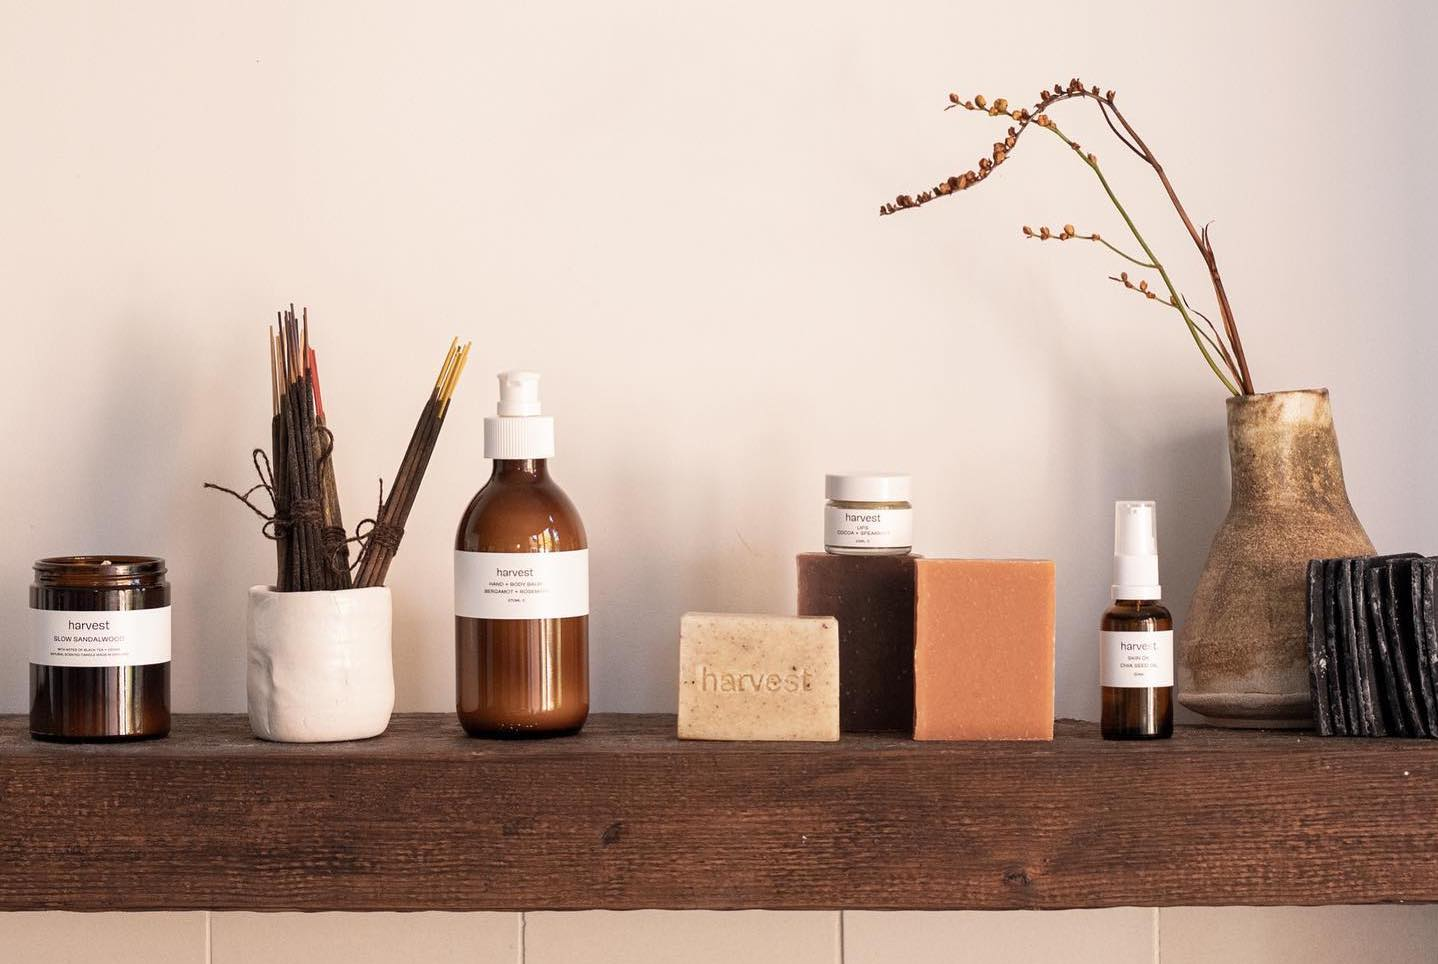 A selection of bottles and jars filled with beauty products from Harvest skincare